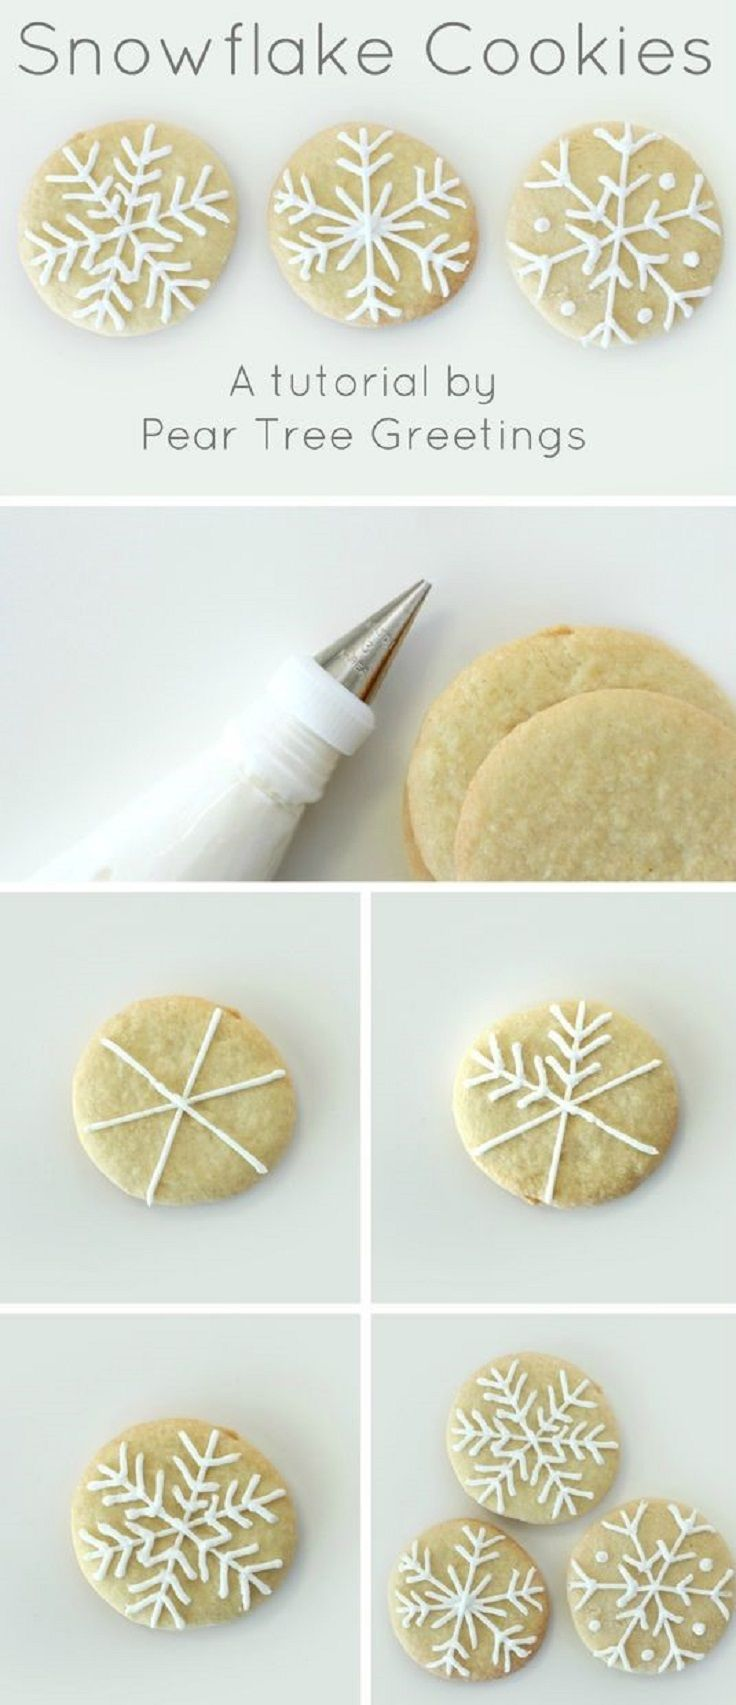 How To Make Snowflake Christmas Cookies